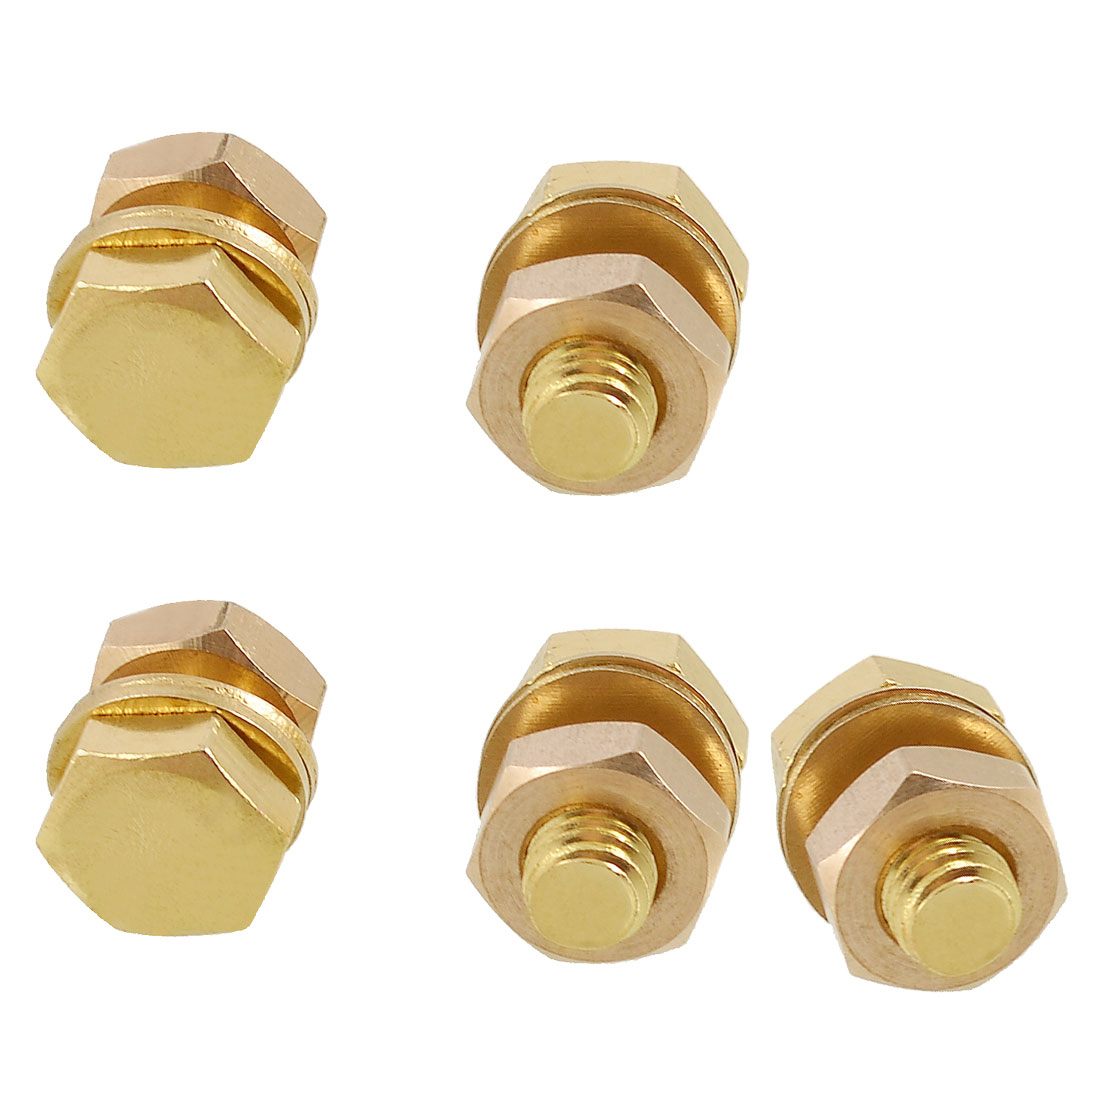 5 x Solid Brass 8mm x 15mm Male Thread Hex Screw Bolts Nuts Washers Set